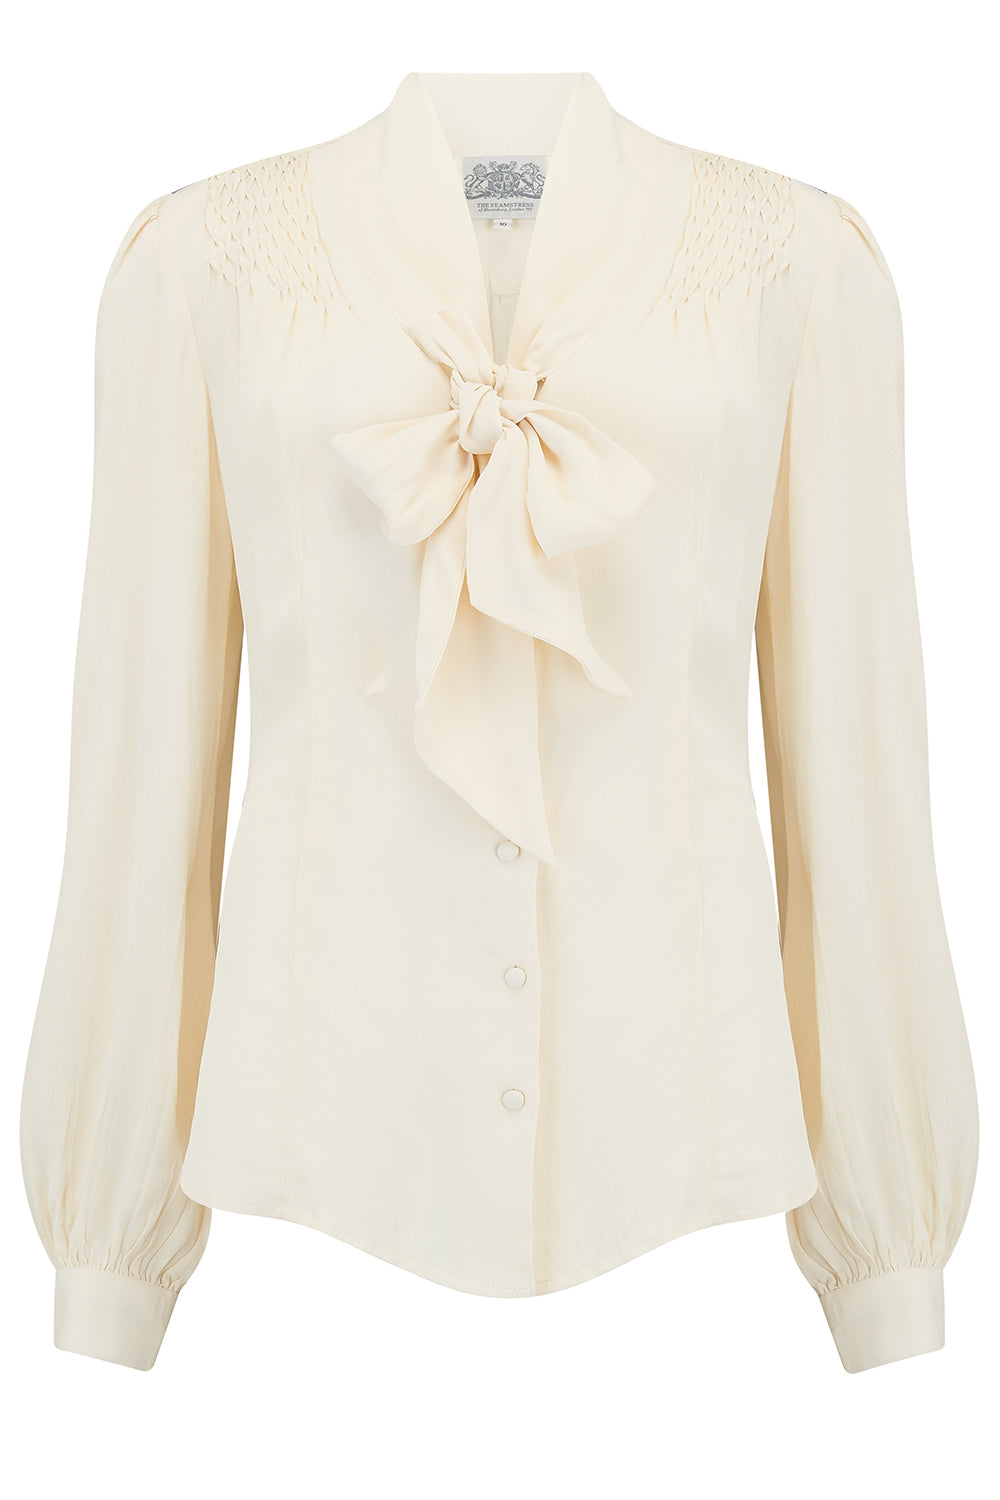 Eva Long Sleeve Blouse in Cream, Authentic & Classic 1940s Vintage Style